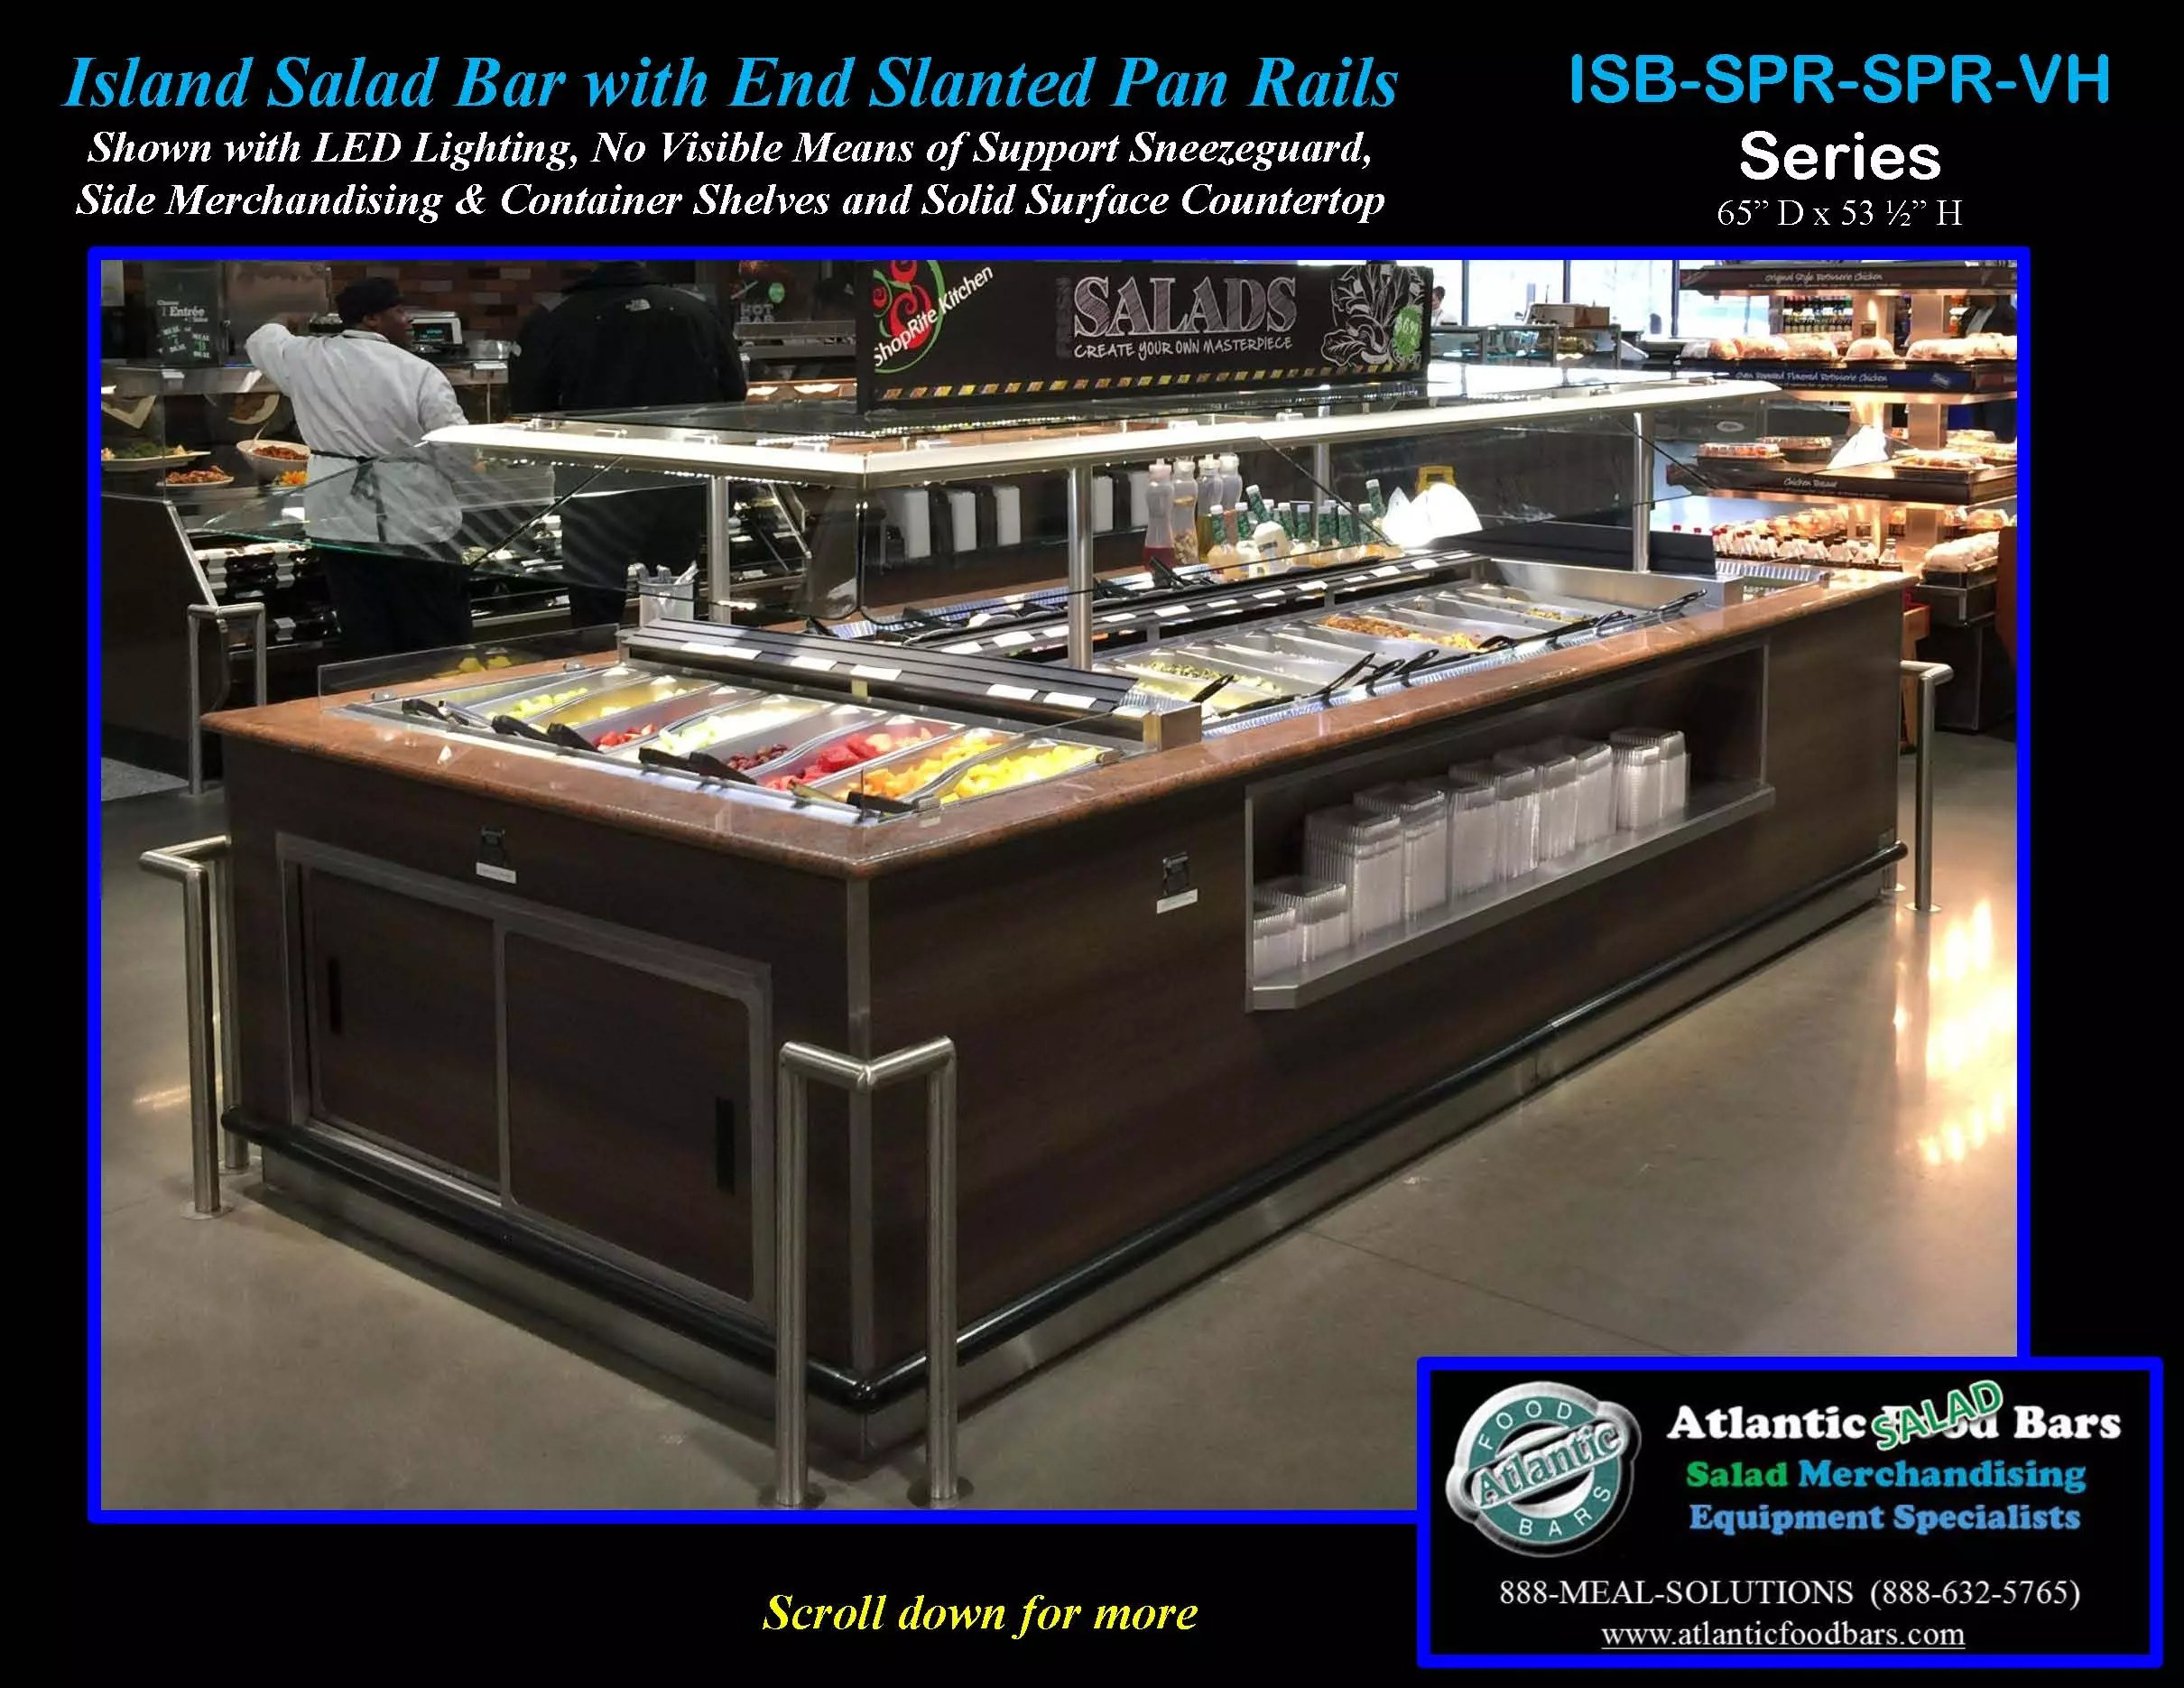 Atlantic food bars island salad bar with slanted end pan rails refrigerated island salad bar featuring slanted end pan rails granite countertop and led lighting isb14863 gc led spr2 vh aloadofball Image collections